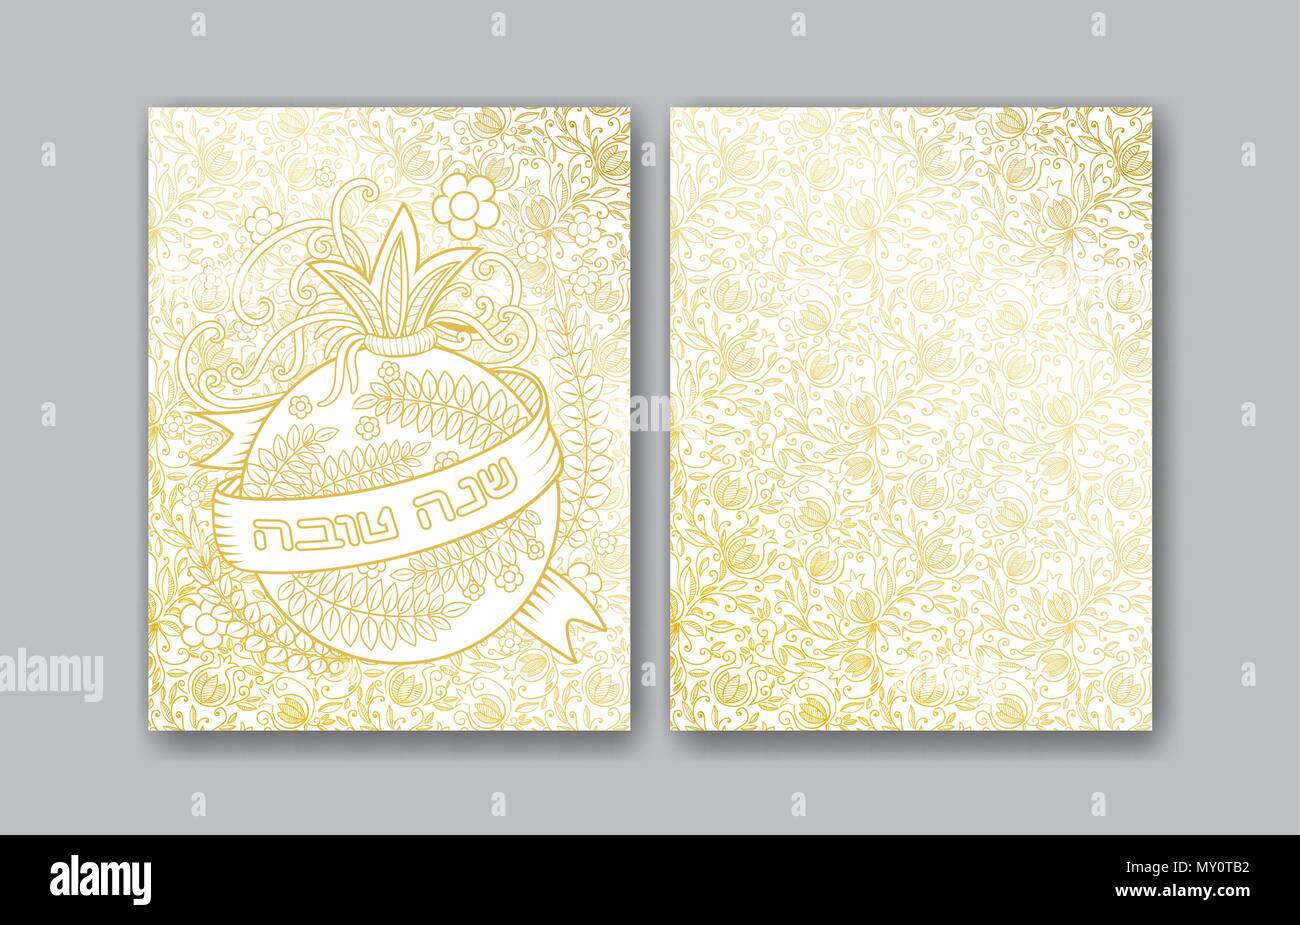 Rosh Hashanah Jewish New Year Greeting Cards Design With Golden